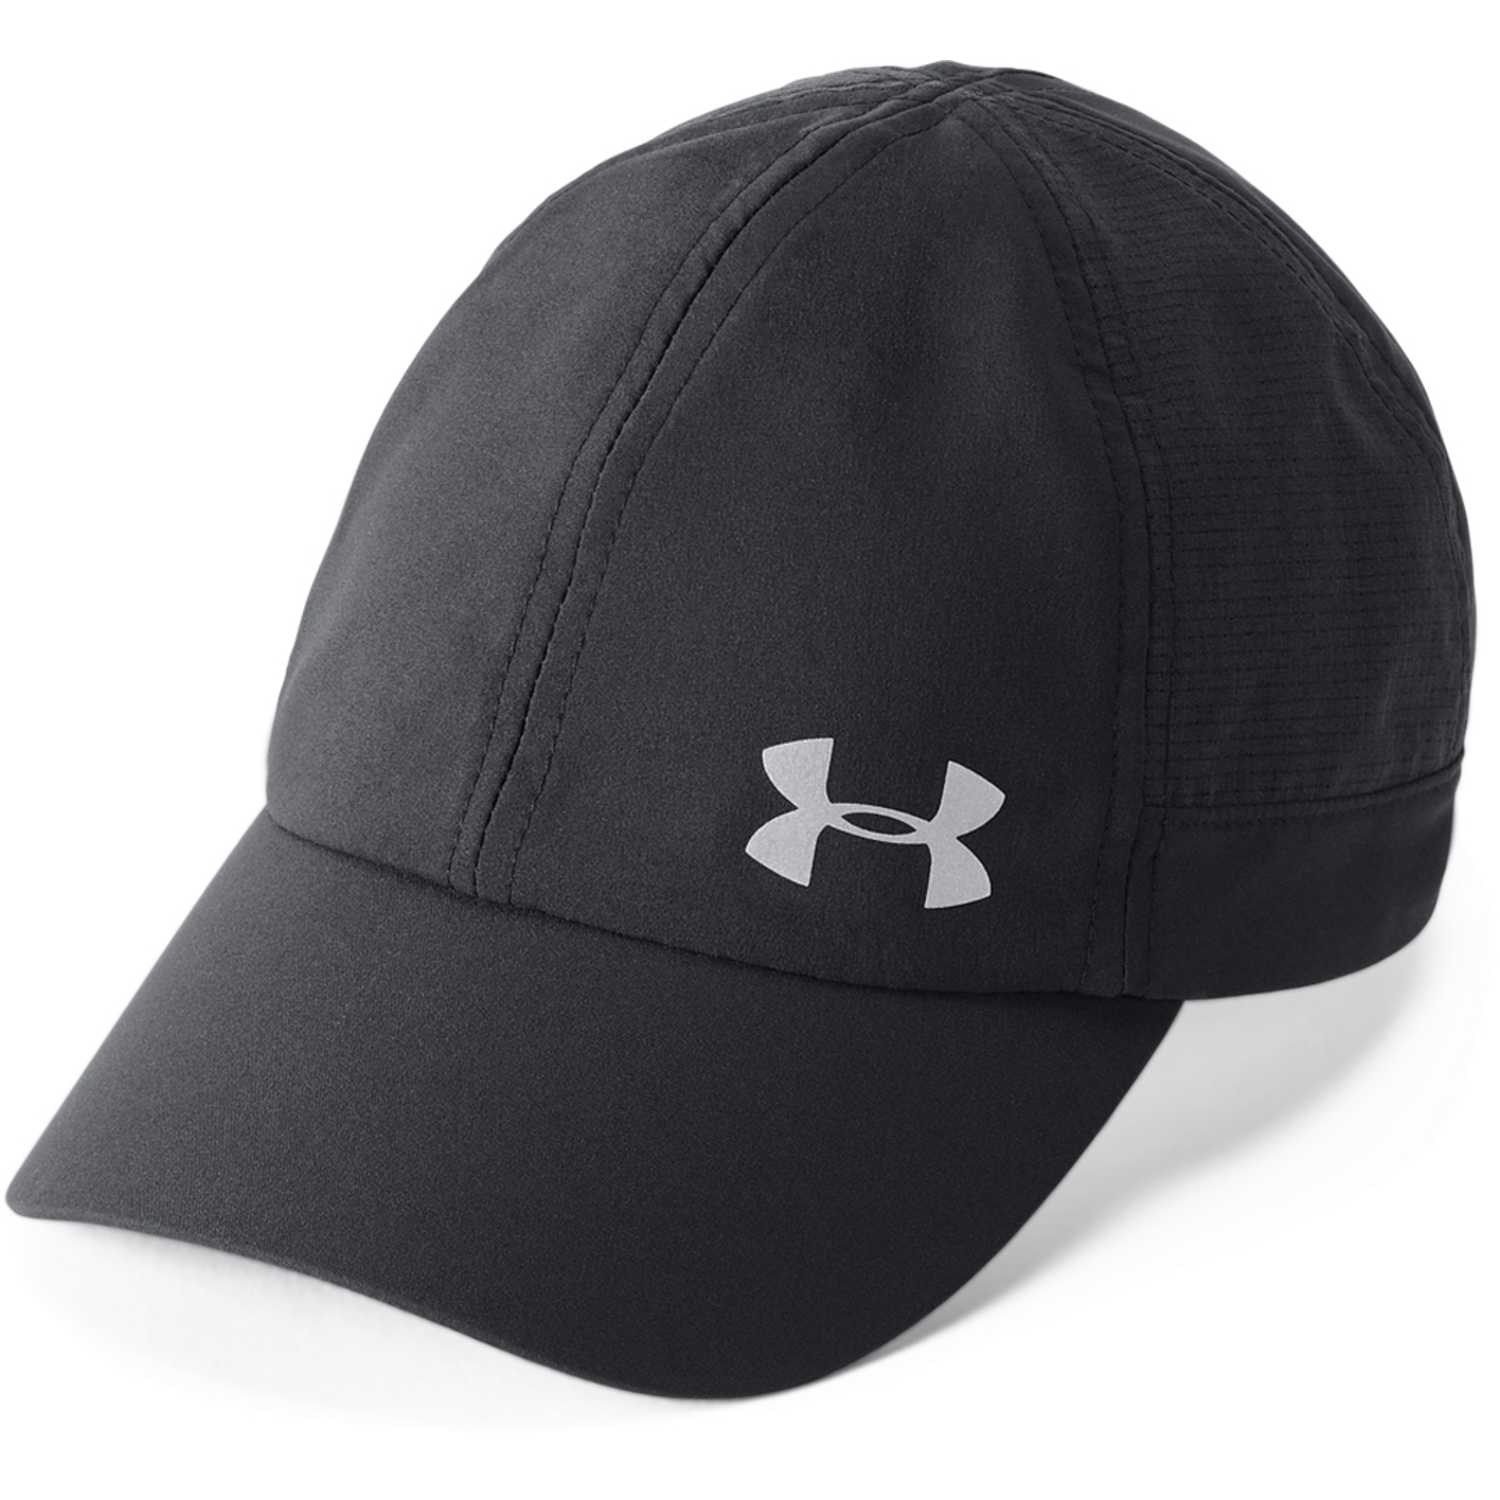 Gorro de Mujer Under Armour Negro ua fly by cap  3eba368004d